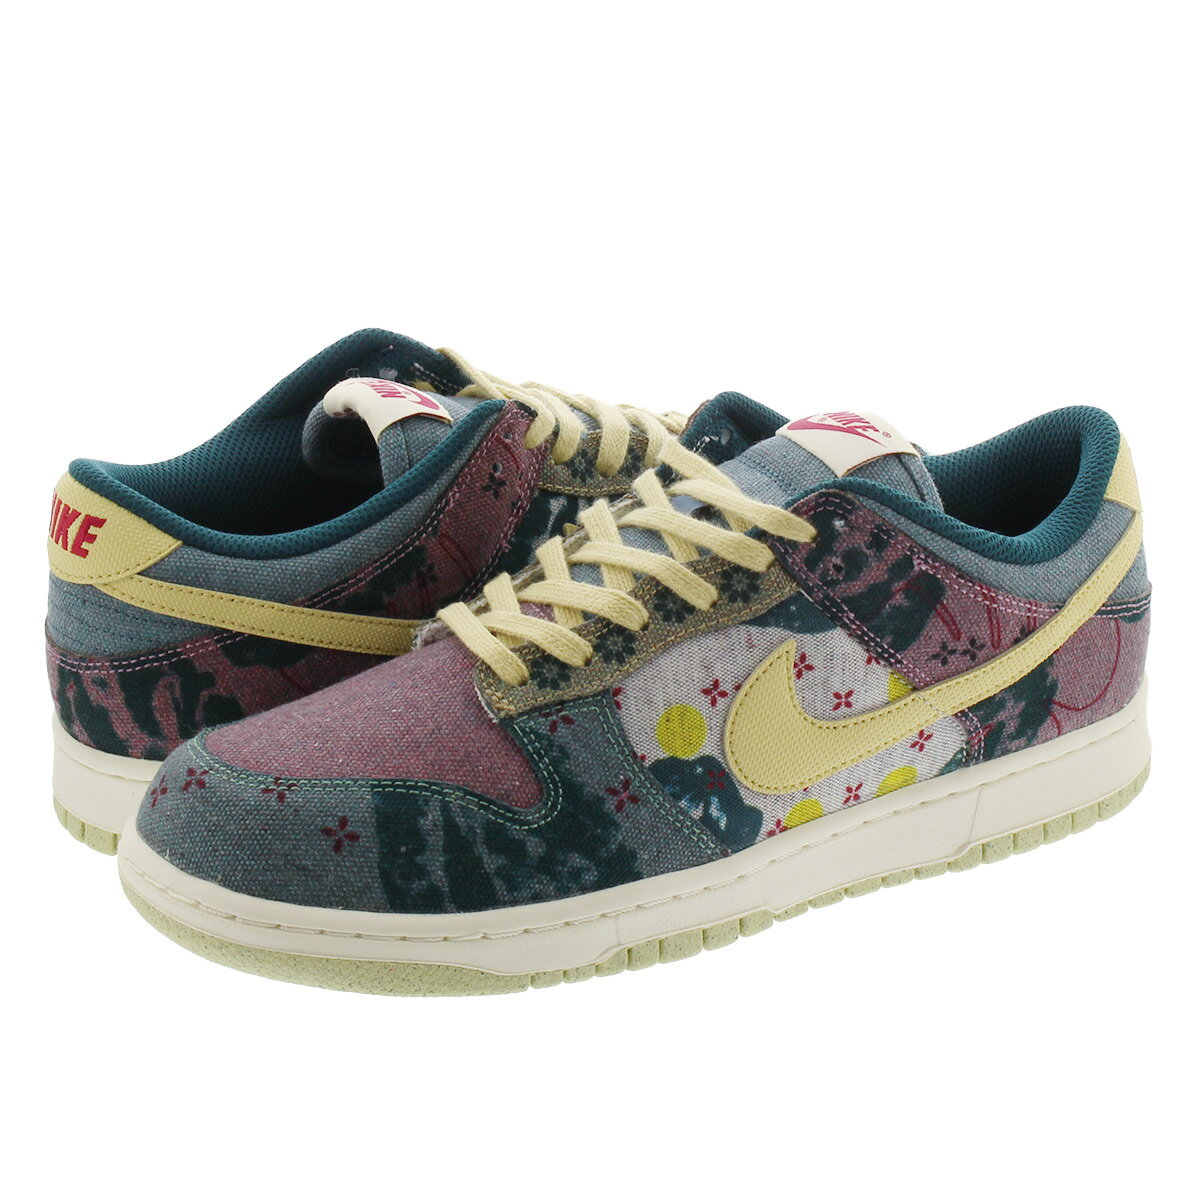 NIKE DUNK LOW SP 【COMMUNITY GARDEN】 ナイキ ダンク ロー SP MULTI COLOR/MIDNIGHT TURQUOISE/CARDINAL RED/LEMON WASH cz9747-900画像